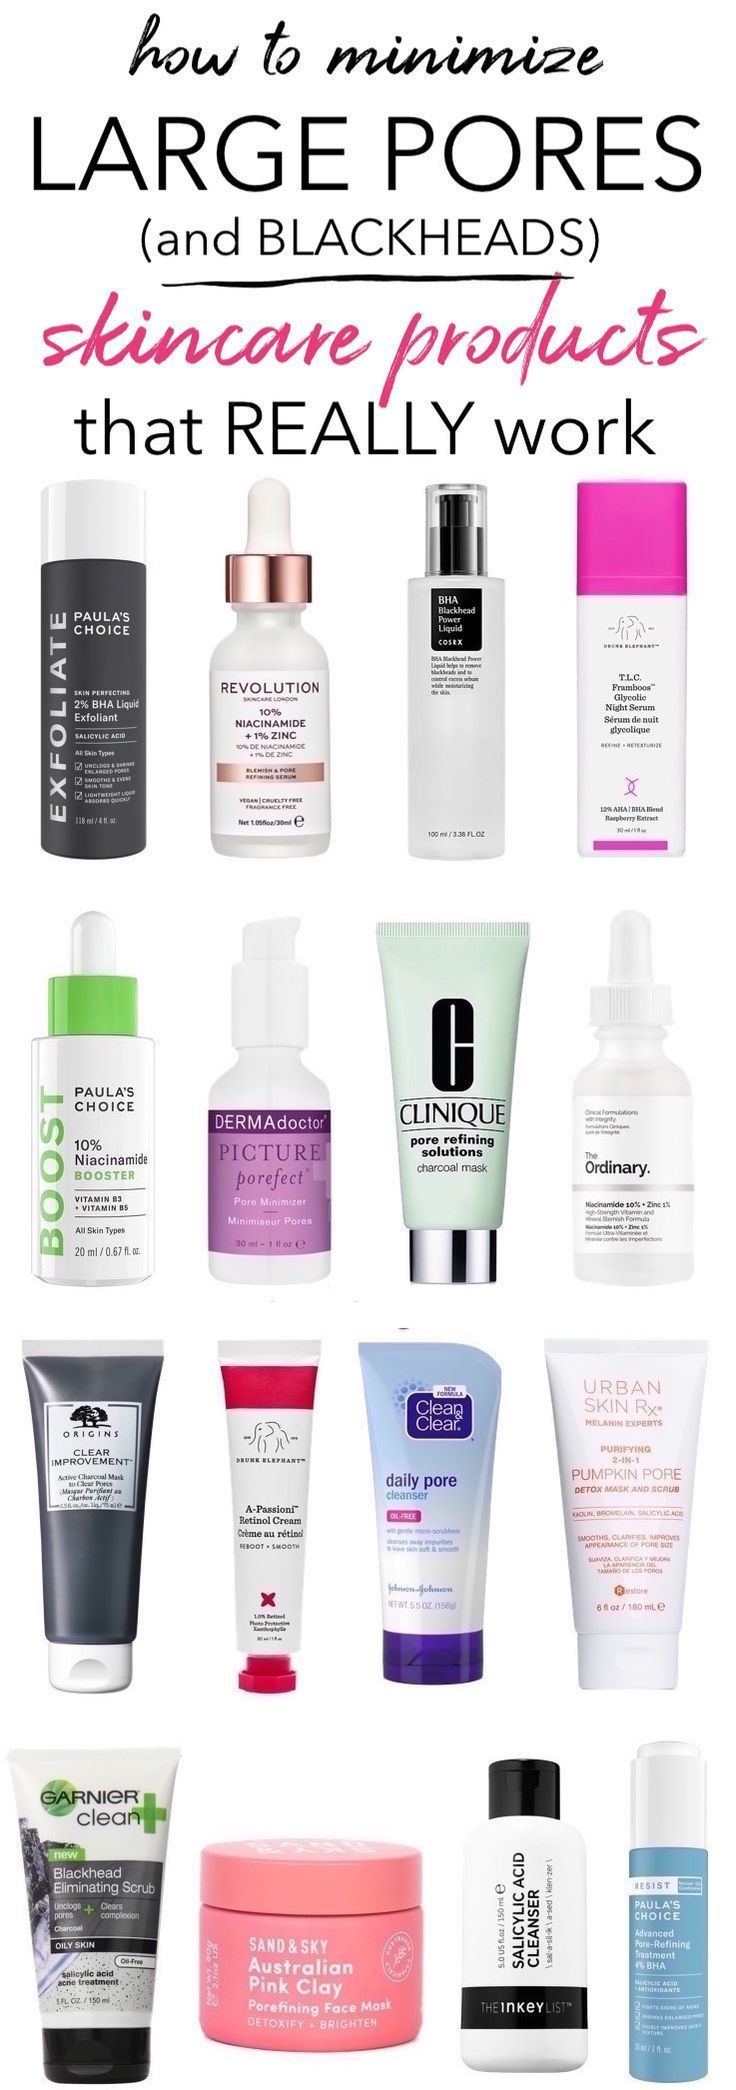 Pore Problems These Skincare Products Really Work To Reduce Large Pores And Blackheads Blackheads Large Por Skin Care Treatments Large Pores Skin Care